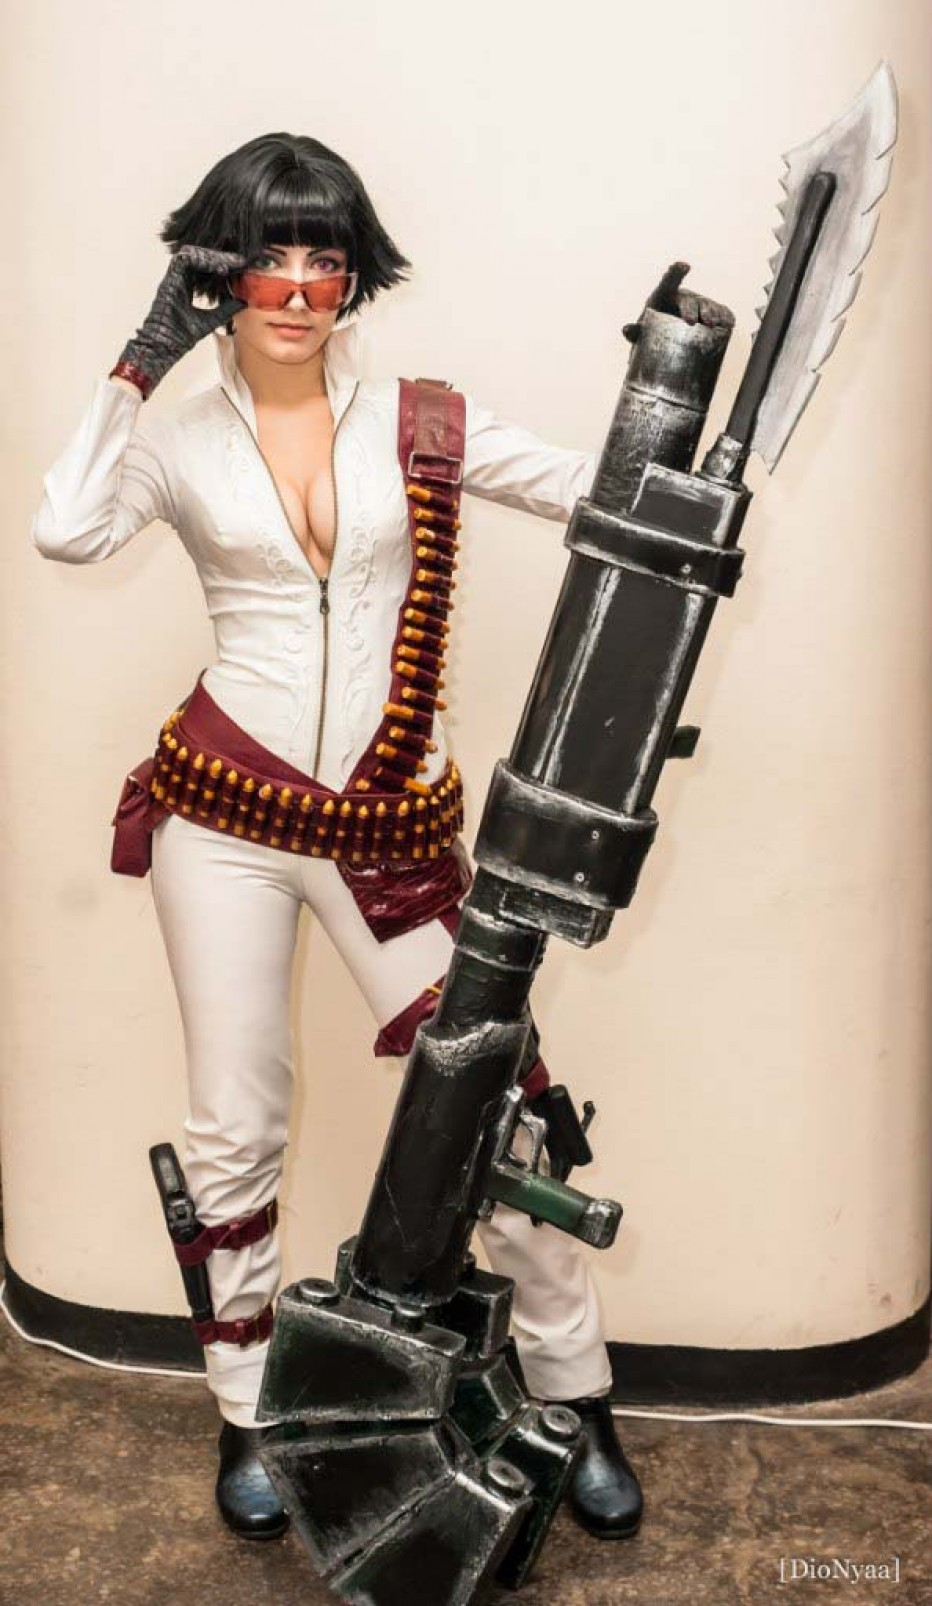 Lady-Devil-May-Cry-Cosplay-Gamers-Heroes-13.jpg